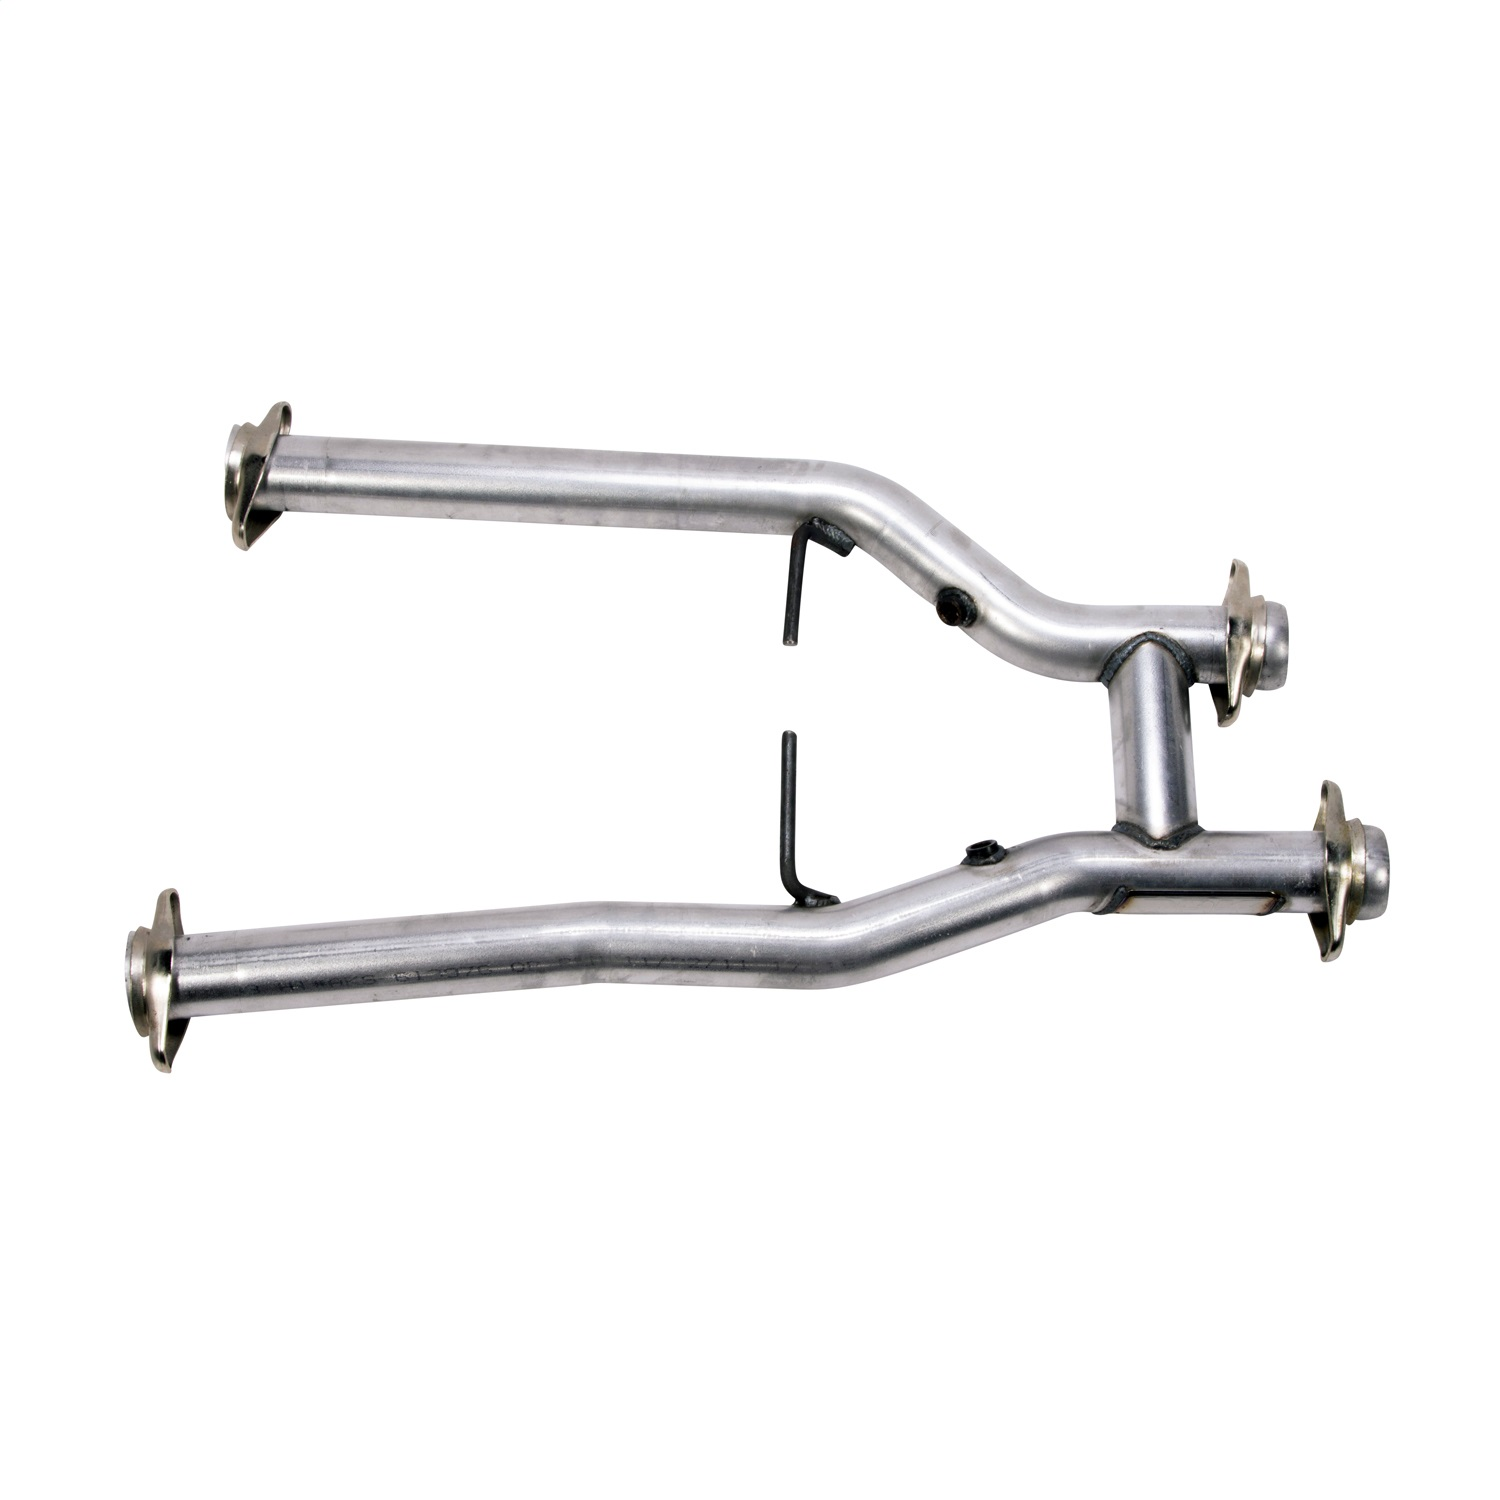 BBK Performance 1507 High-Flow Full H-Pipe Assembly Fits 86-93 Mustang